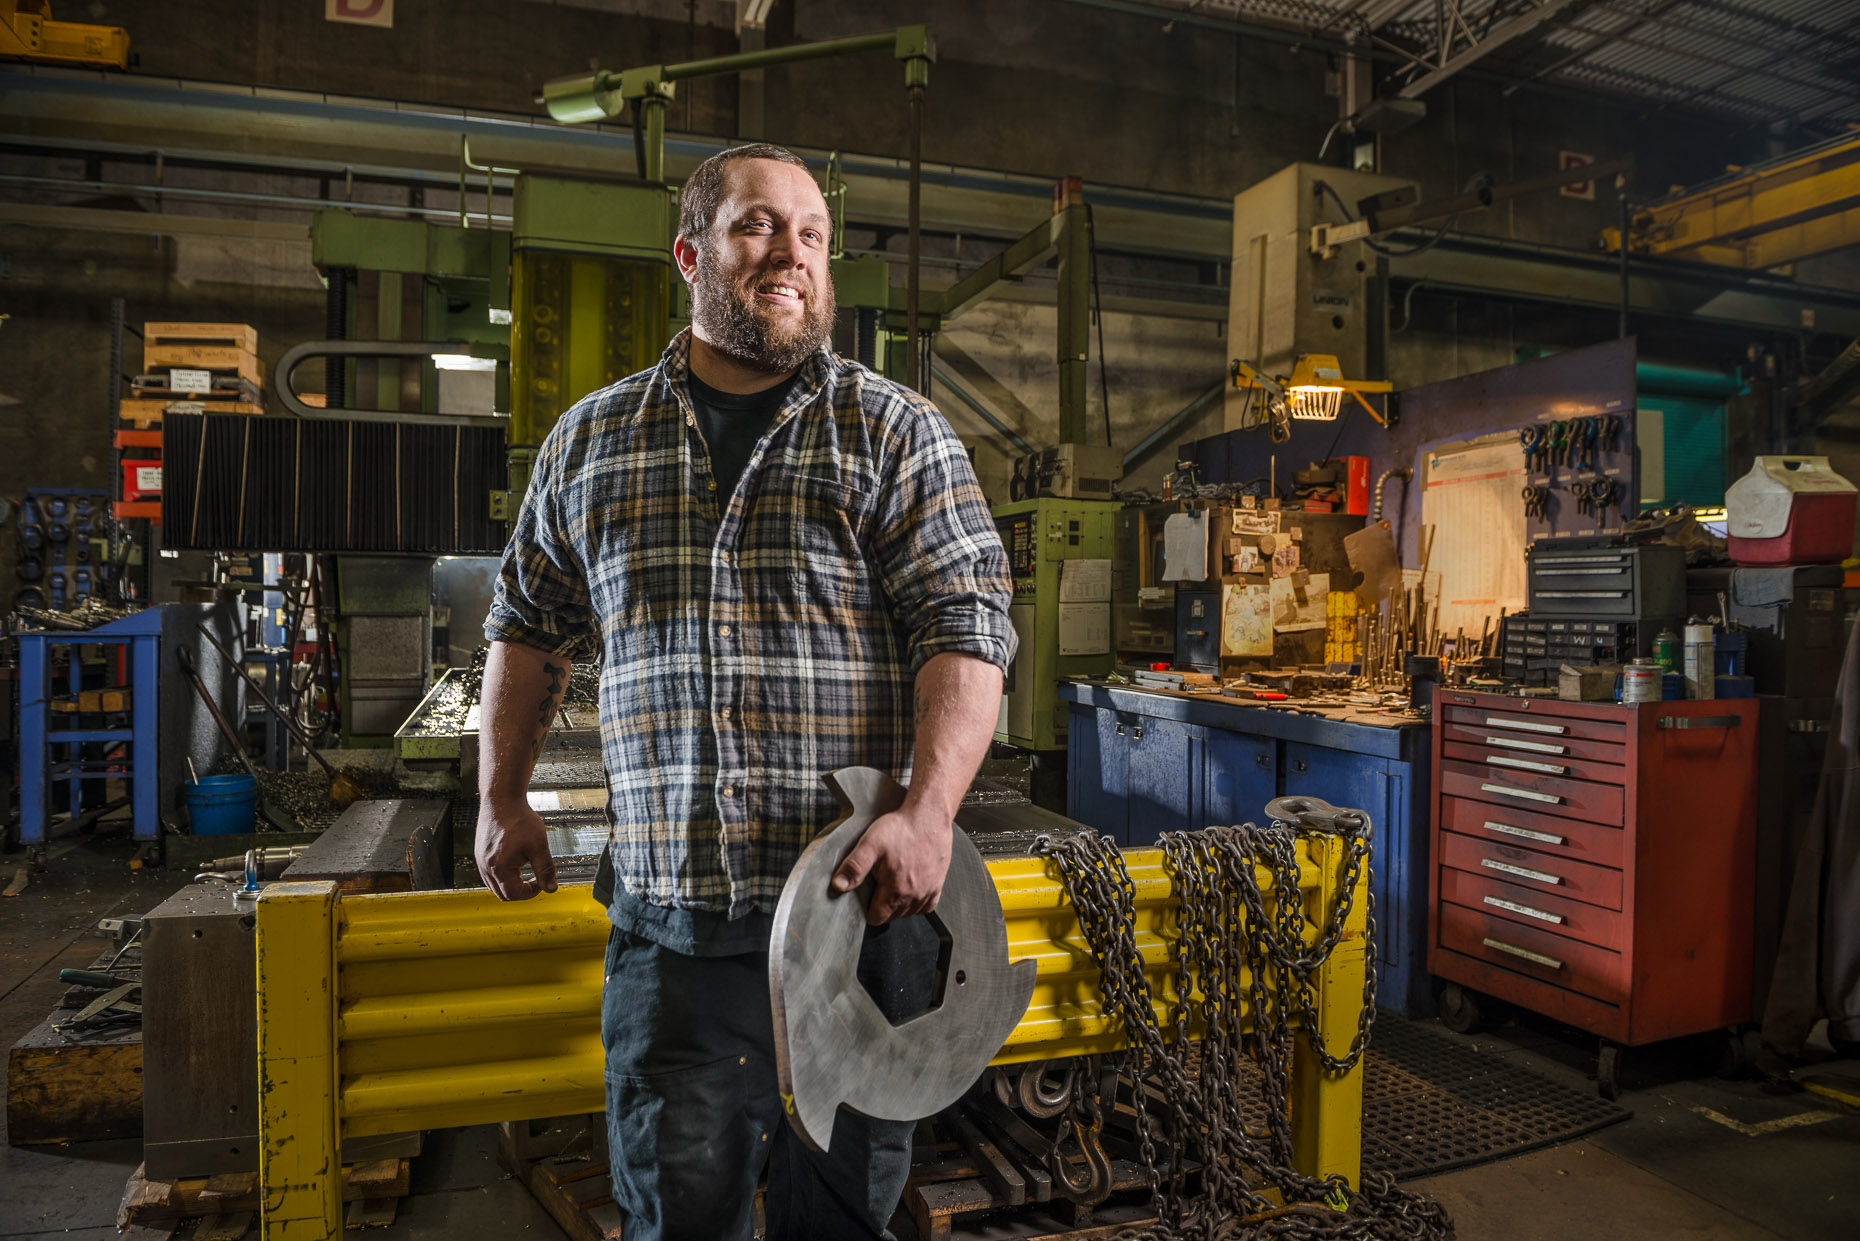 Dramatic environmental portrait of metal fabricator